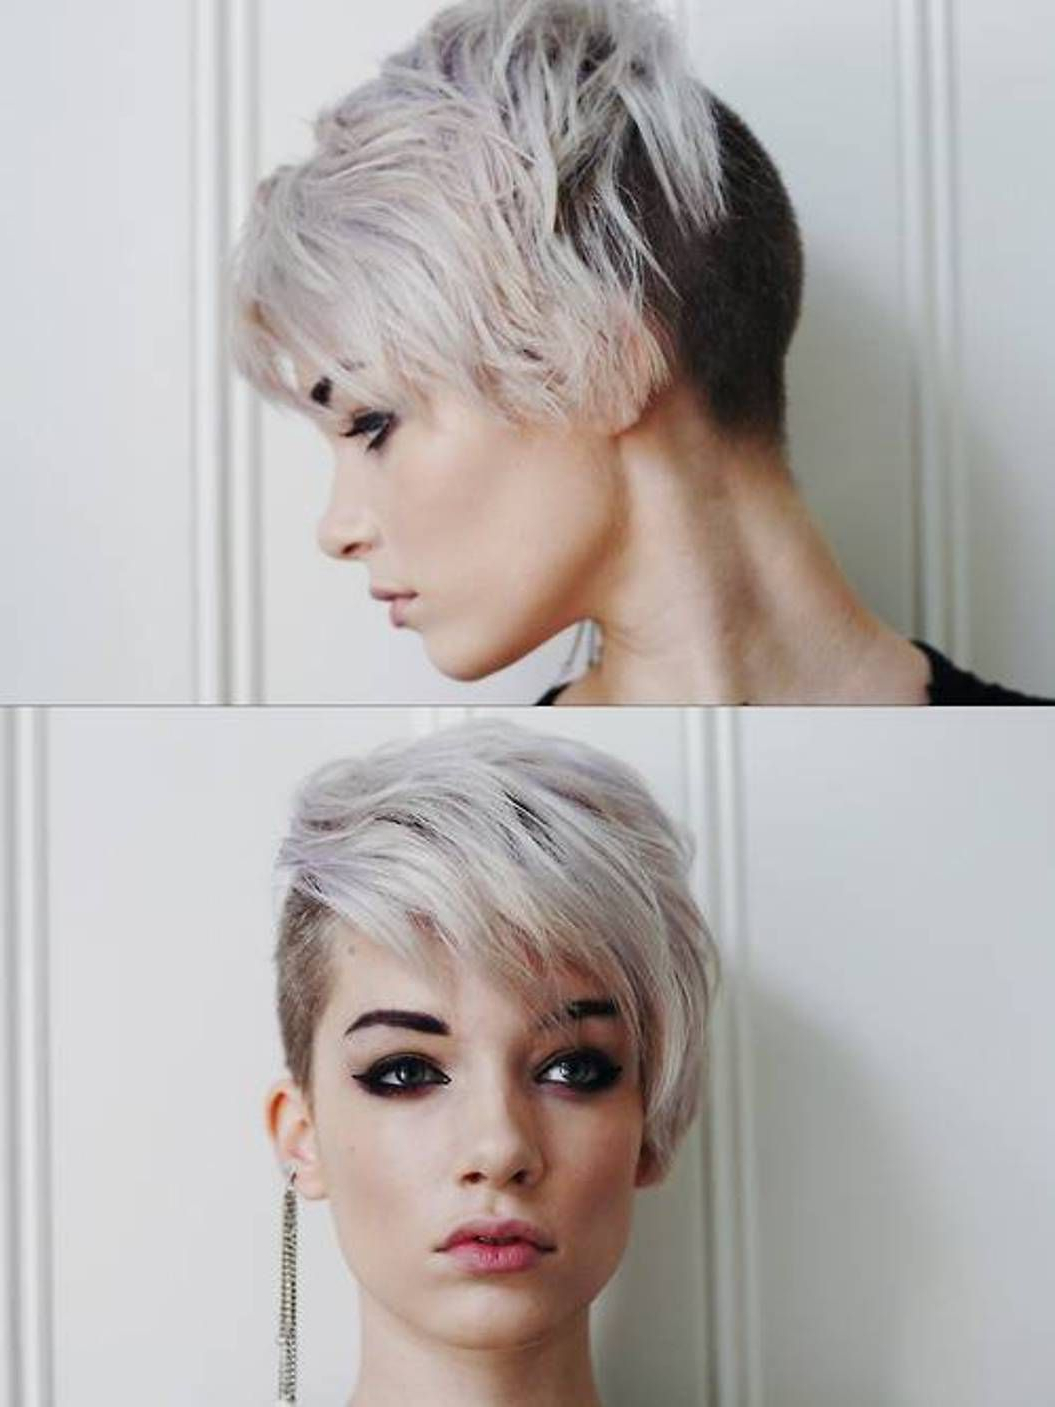 Side Shaved Short Haircuts For Women | Projects To Try | Pinterest Intended For Part Shaved Short Hairstyles (View 2 of 25)